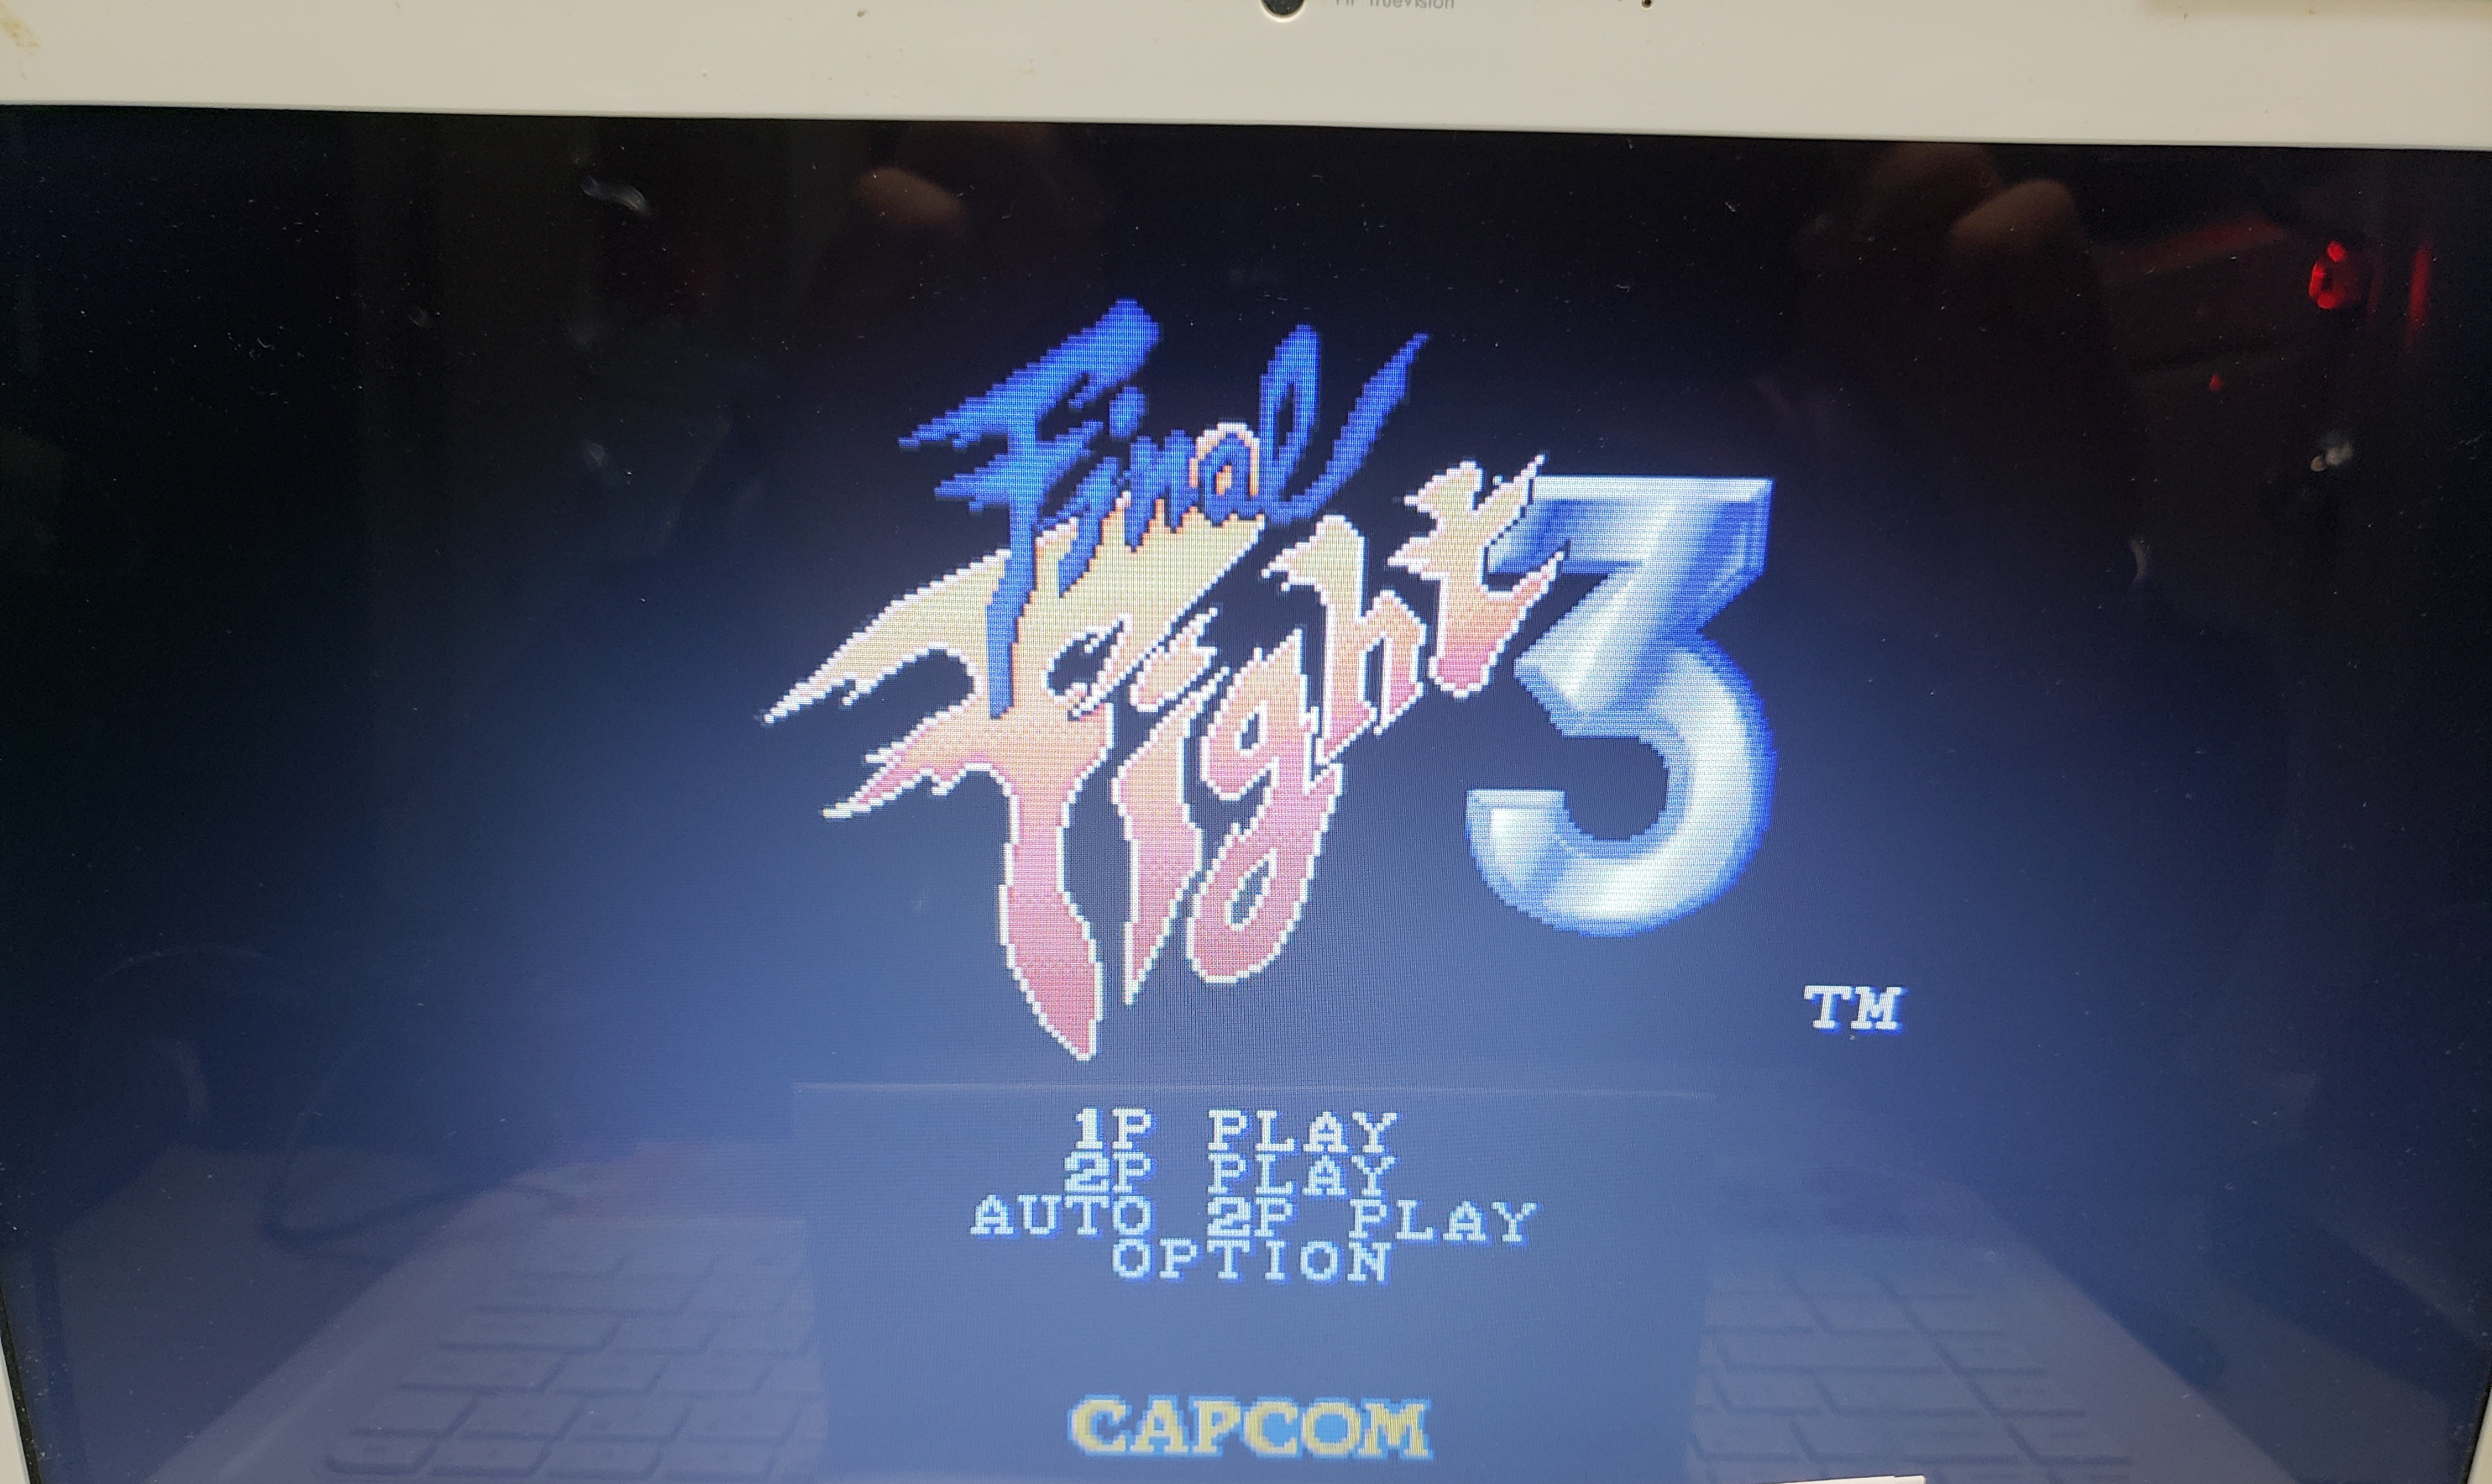 Stryker: Final Fight 3 (SNES/Super Famicom Emulated) 893,150 points on 2018-12-28 02:42:50